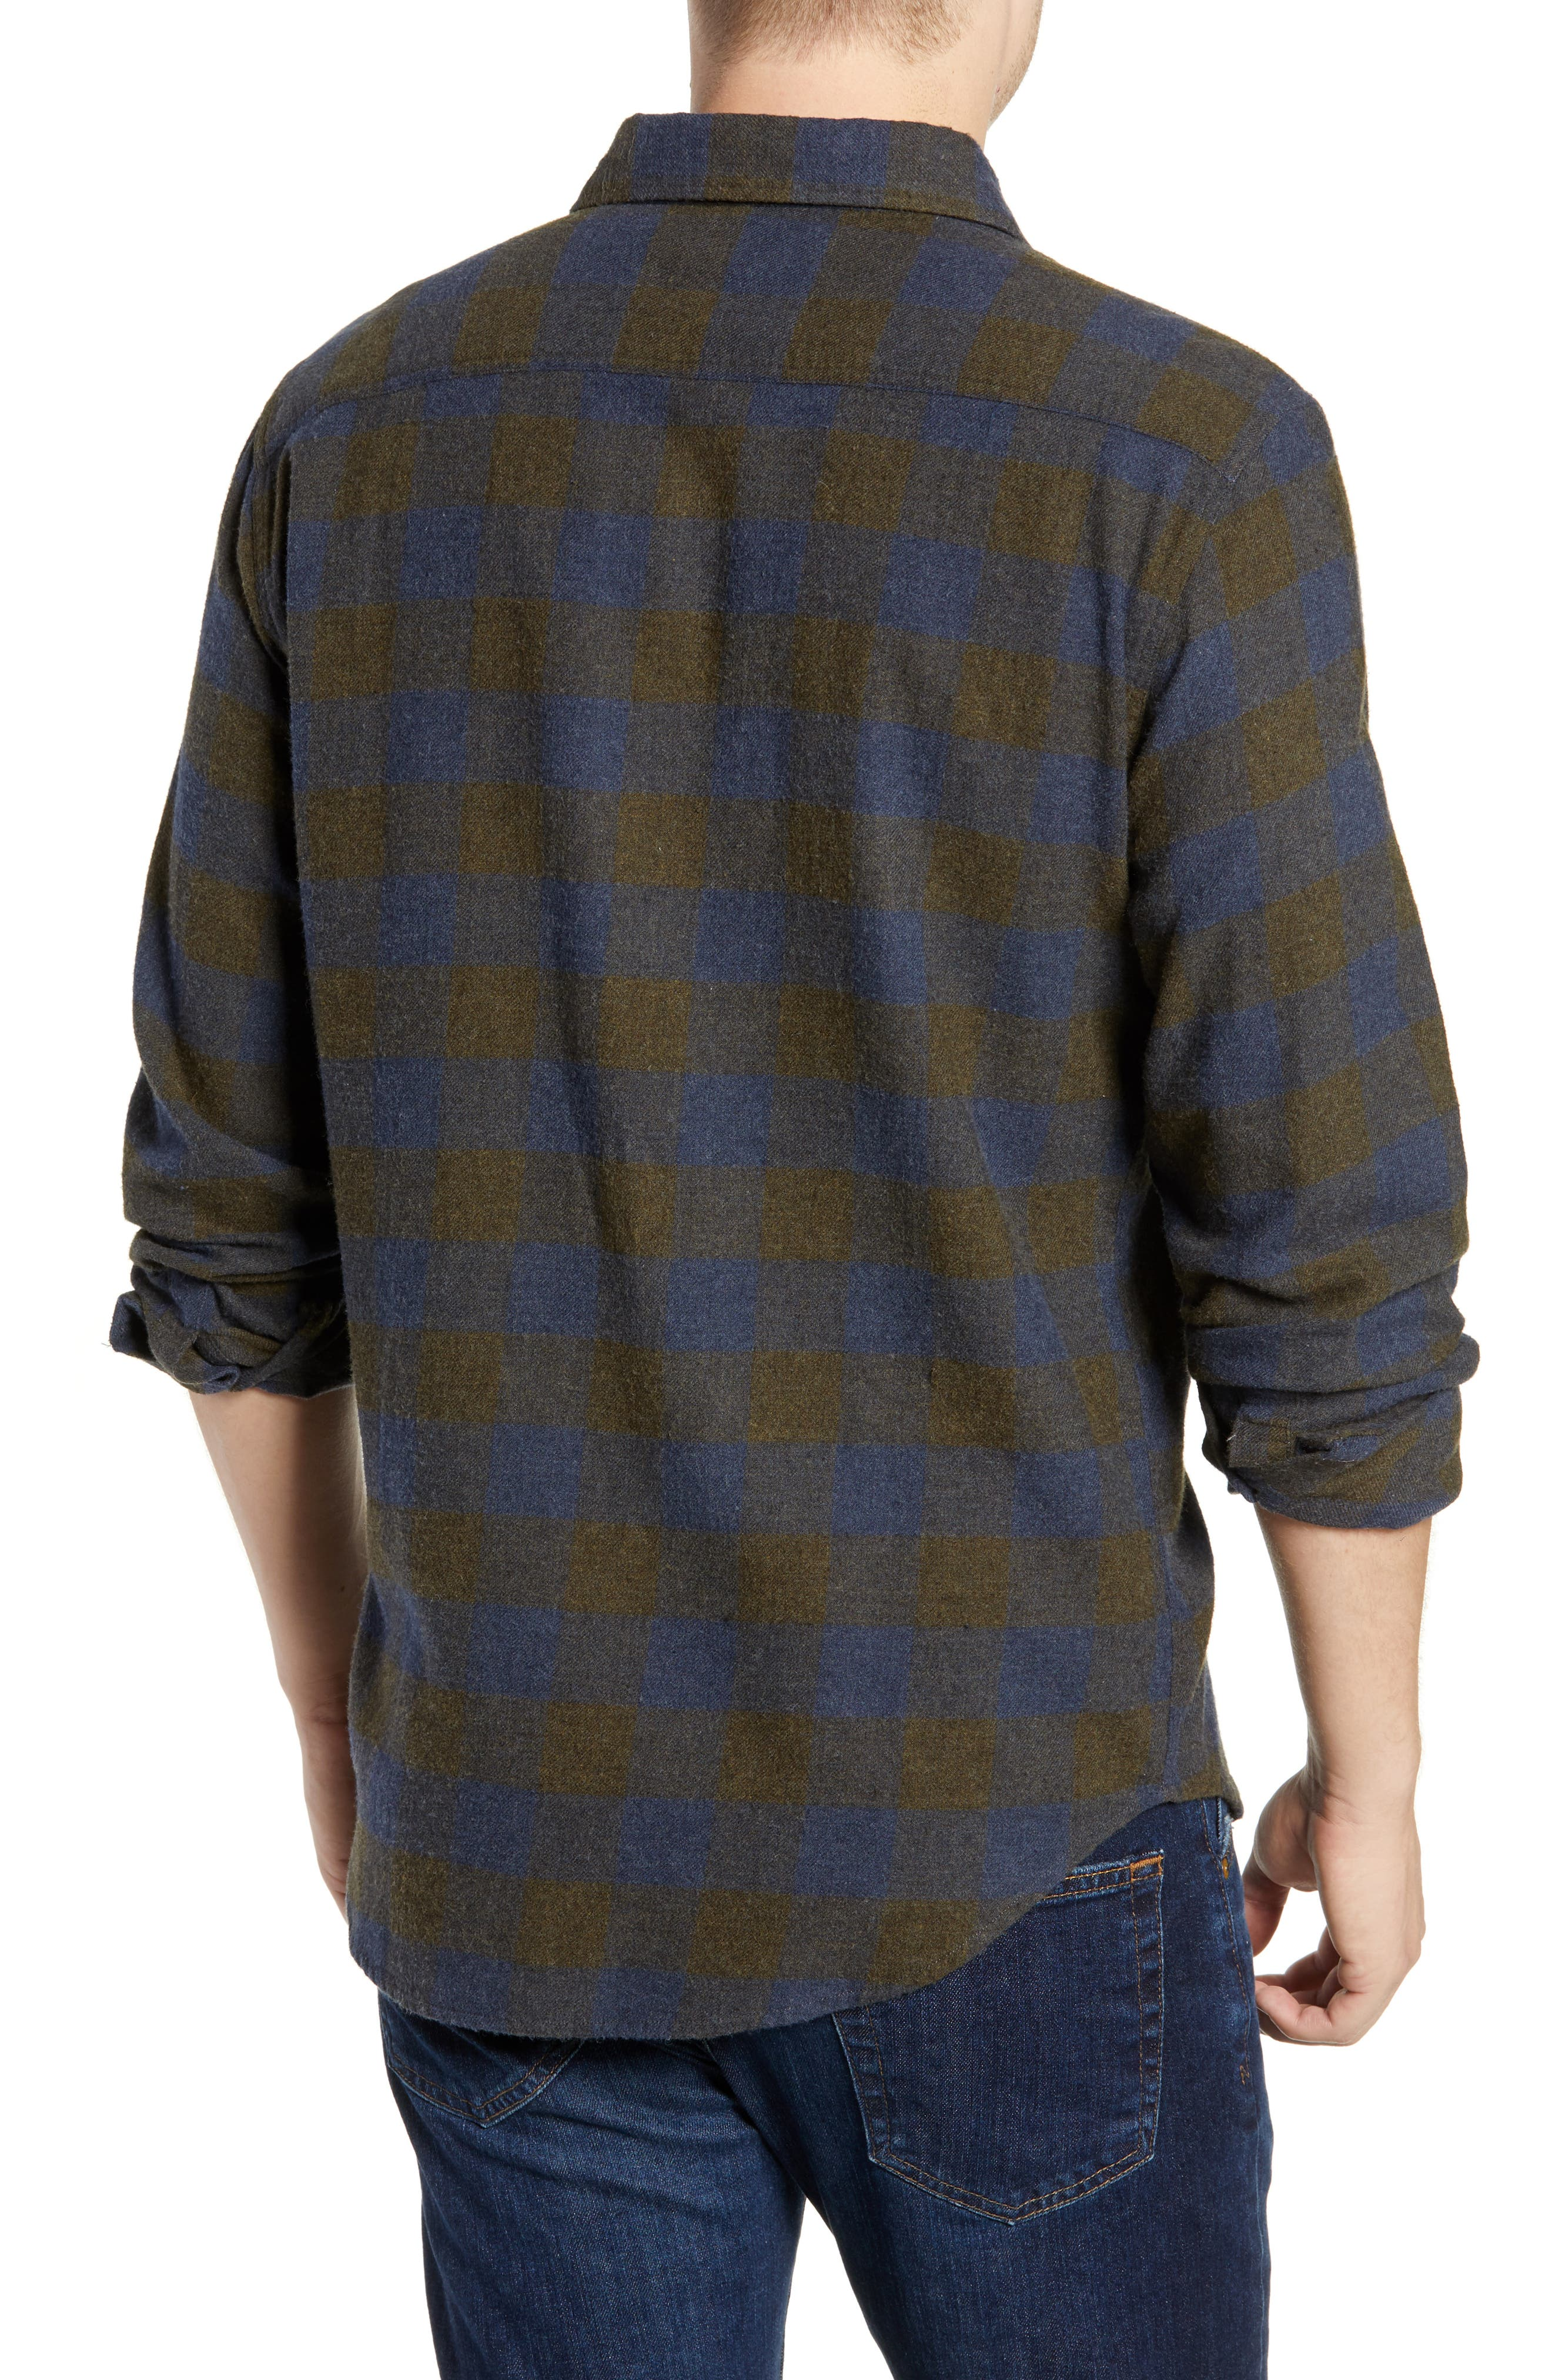 Seasons Check Flannel Shirt,                             Alternate thumbnail 3, color,                             NAVY OLIVE BUFFALO